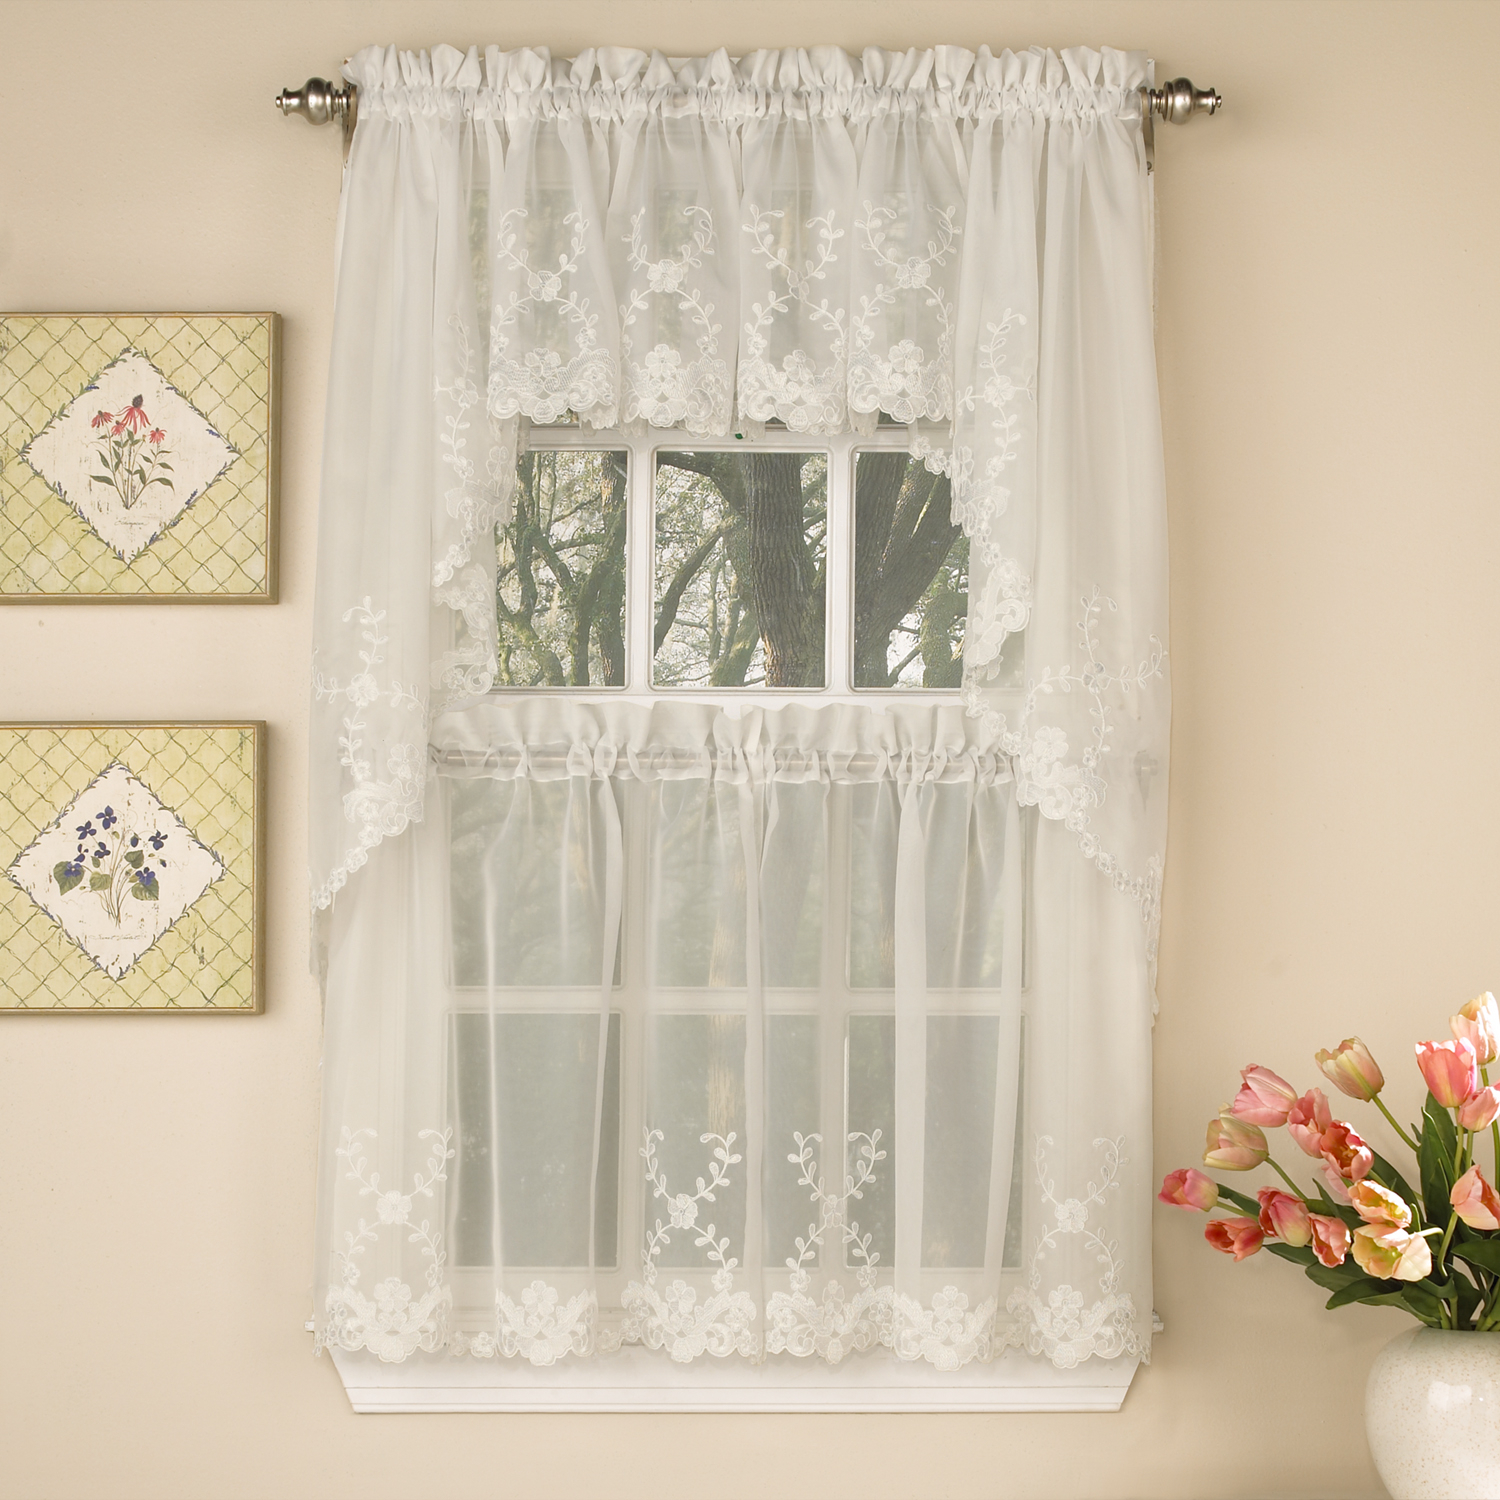 Details About Laurel Leaf Sheer Voile Embroidered Ivory Kitchen Curtains Tier, Valance Or Swag Within Scroll Leaf 3 Piece Curtain Tier And Valance Sets (View 5 of 20)